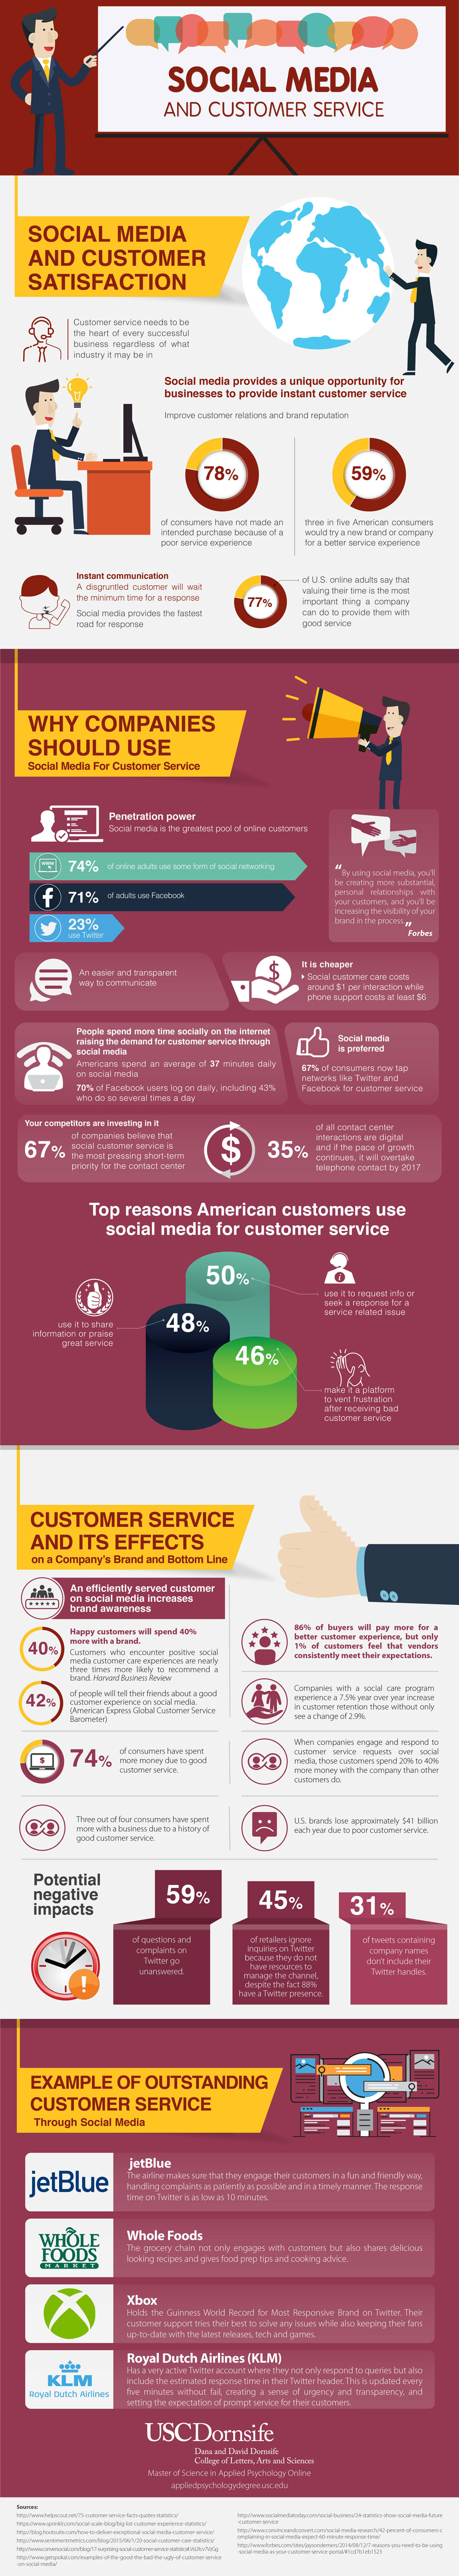 Social Media and Customer Service Infographic